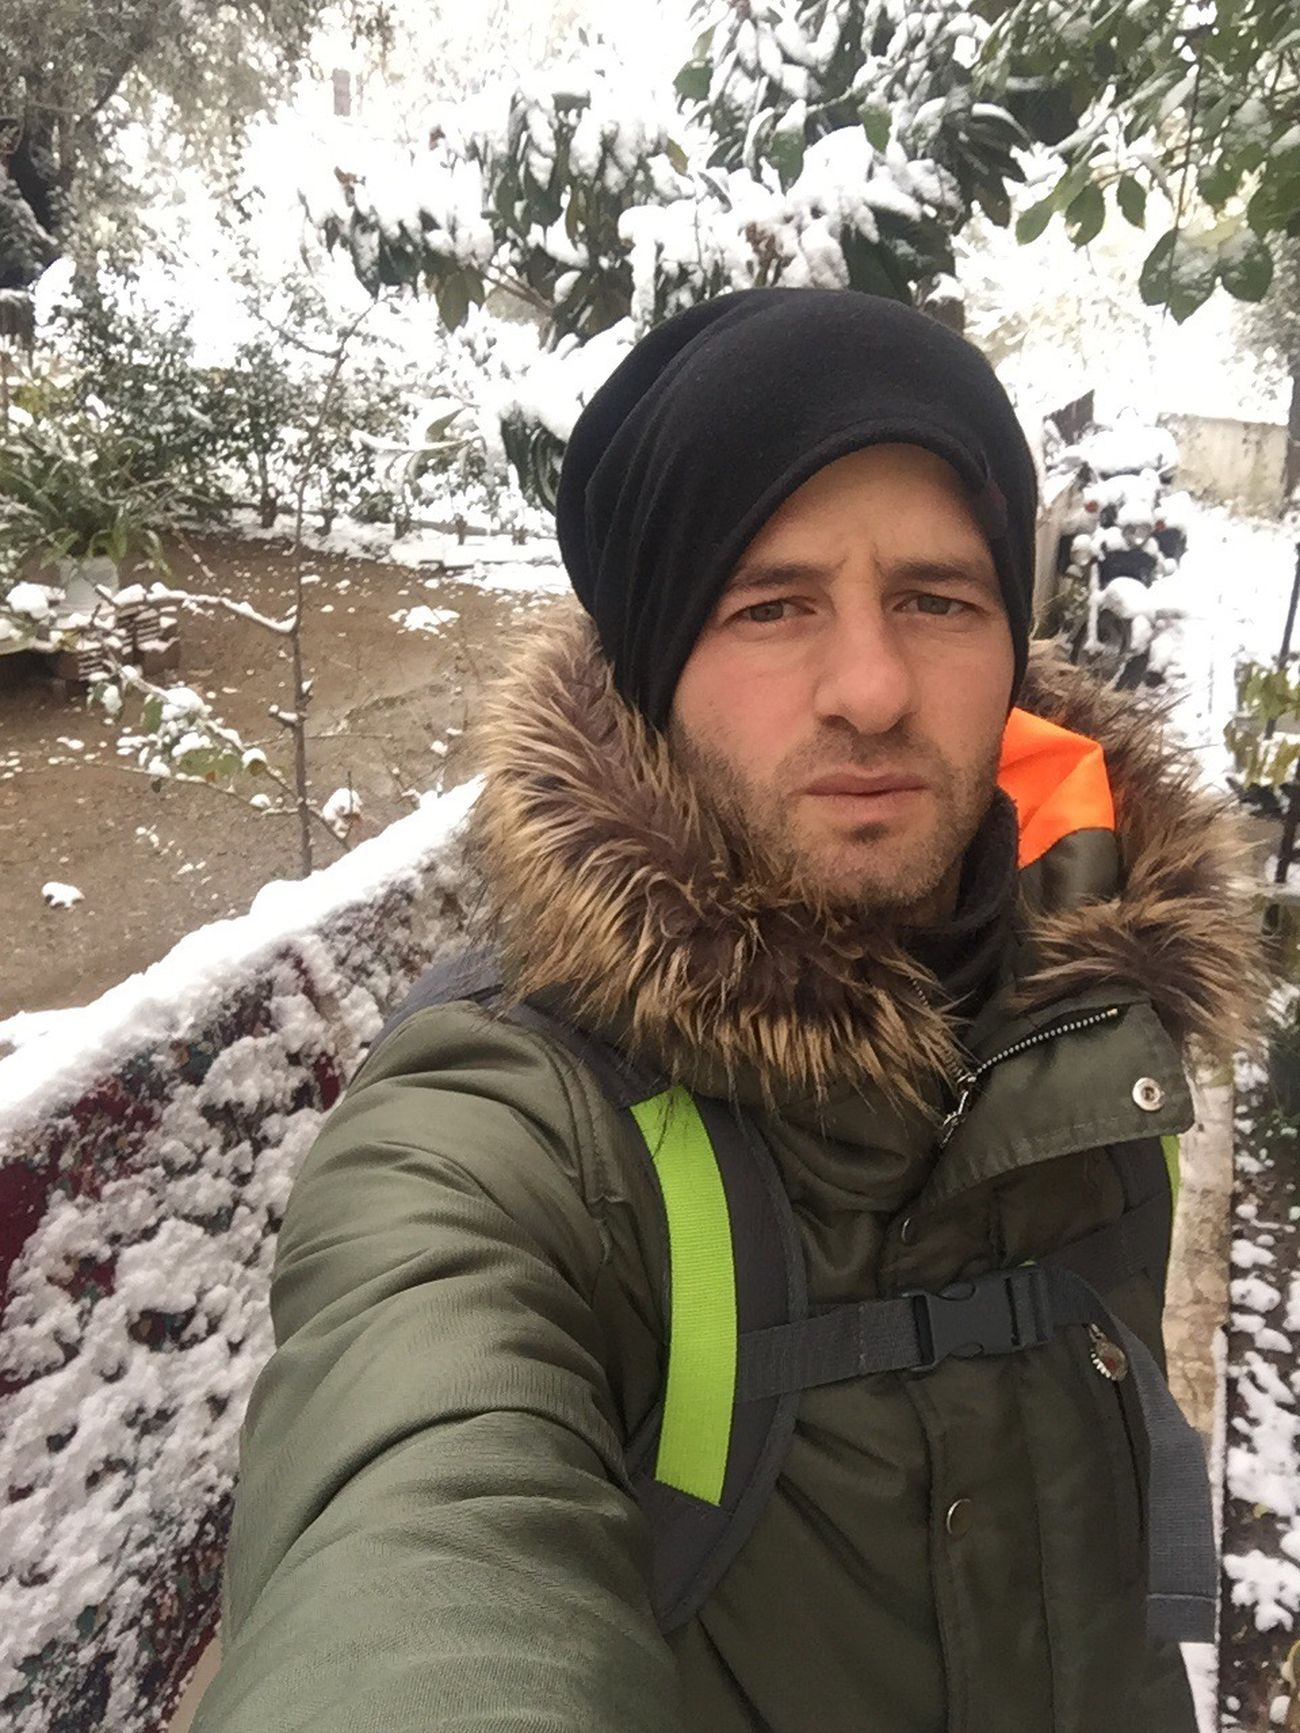 Outdoors Cold Temperature Winter Looking At Camera Snow Warm Clothing Beard Sky Nature Doğa One Person Leisure Activity Lifestyles Knit Hat Only Men Tree Men Young Adult Day Close-up Adults Only One Man Only